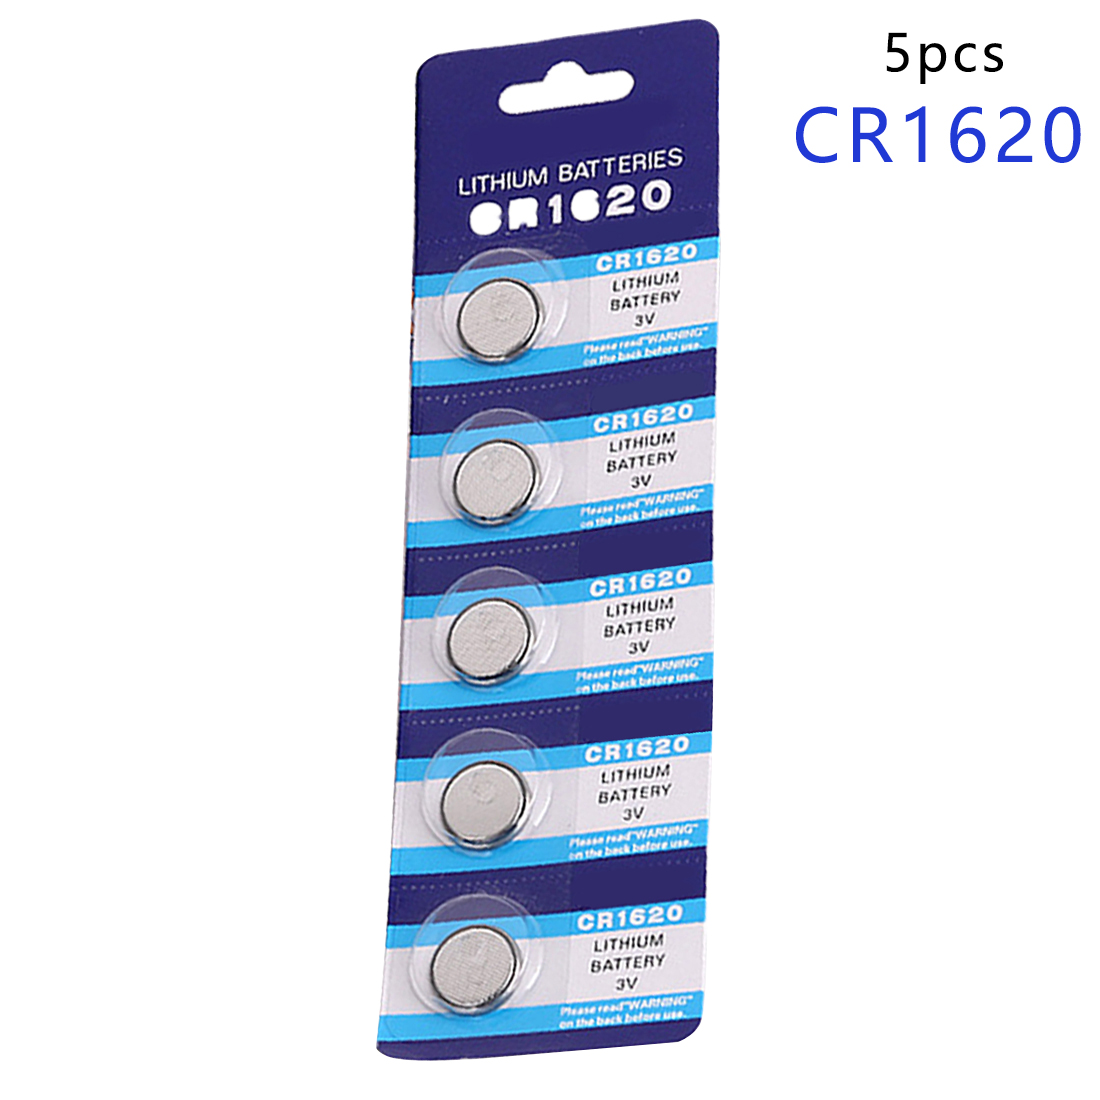 5pcs/Lot CR1620 1620 ECR1620 DL1620 280-208 3V Cell Battery Button Battery,Coin Battery lithium battery For Watches,clocks 1 55v and 3v button cell battery checker battery tester green